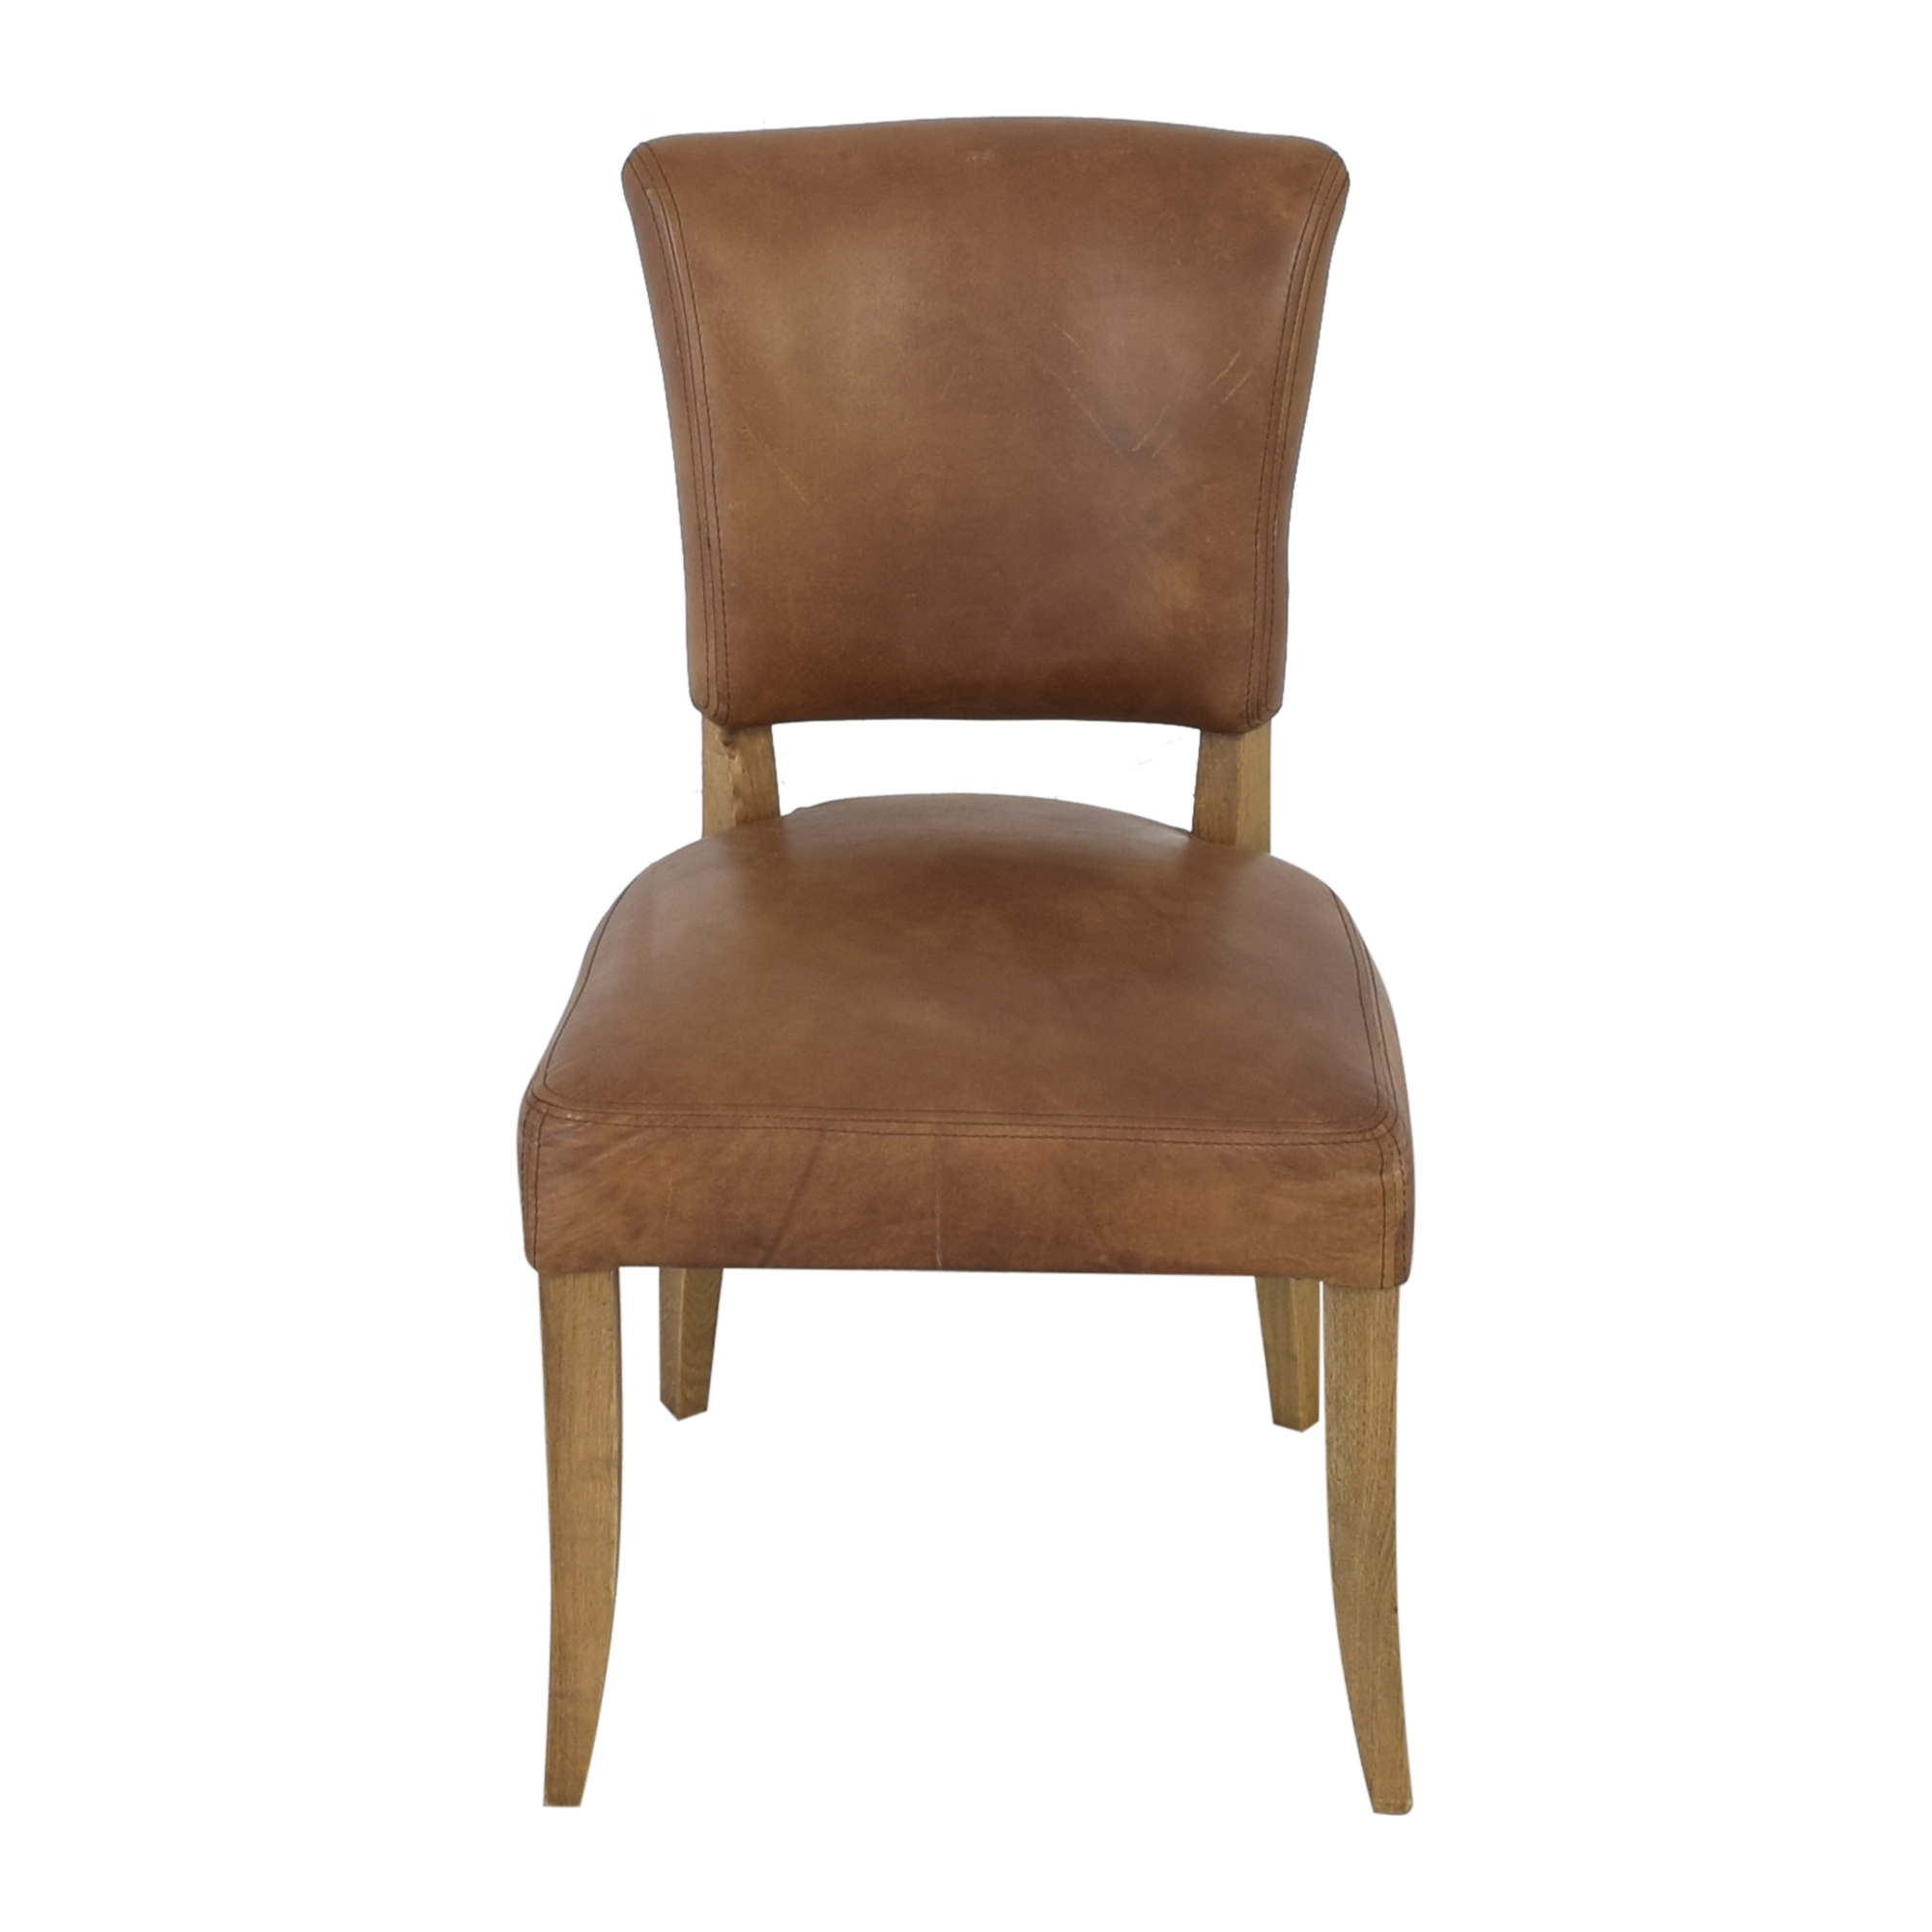 Restoration Hardware Restoration Hardware Adele Leather Side Chair price